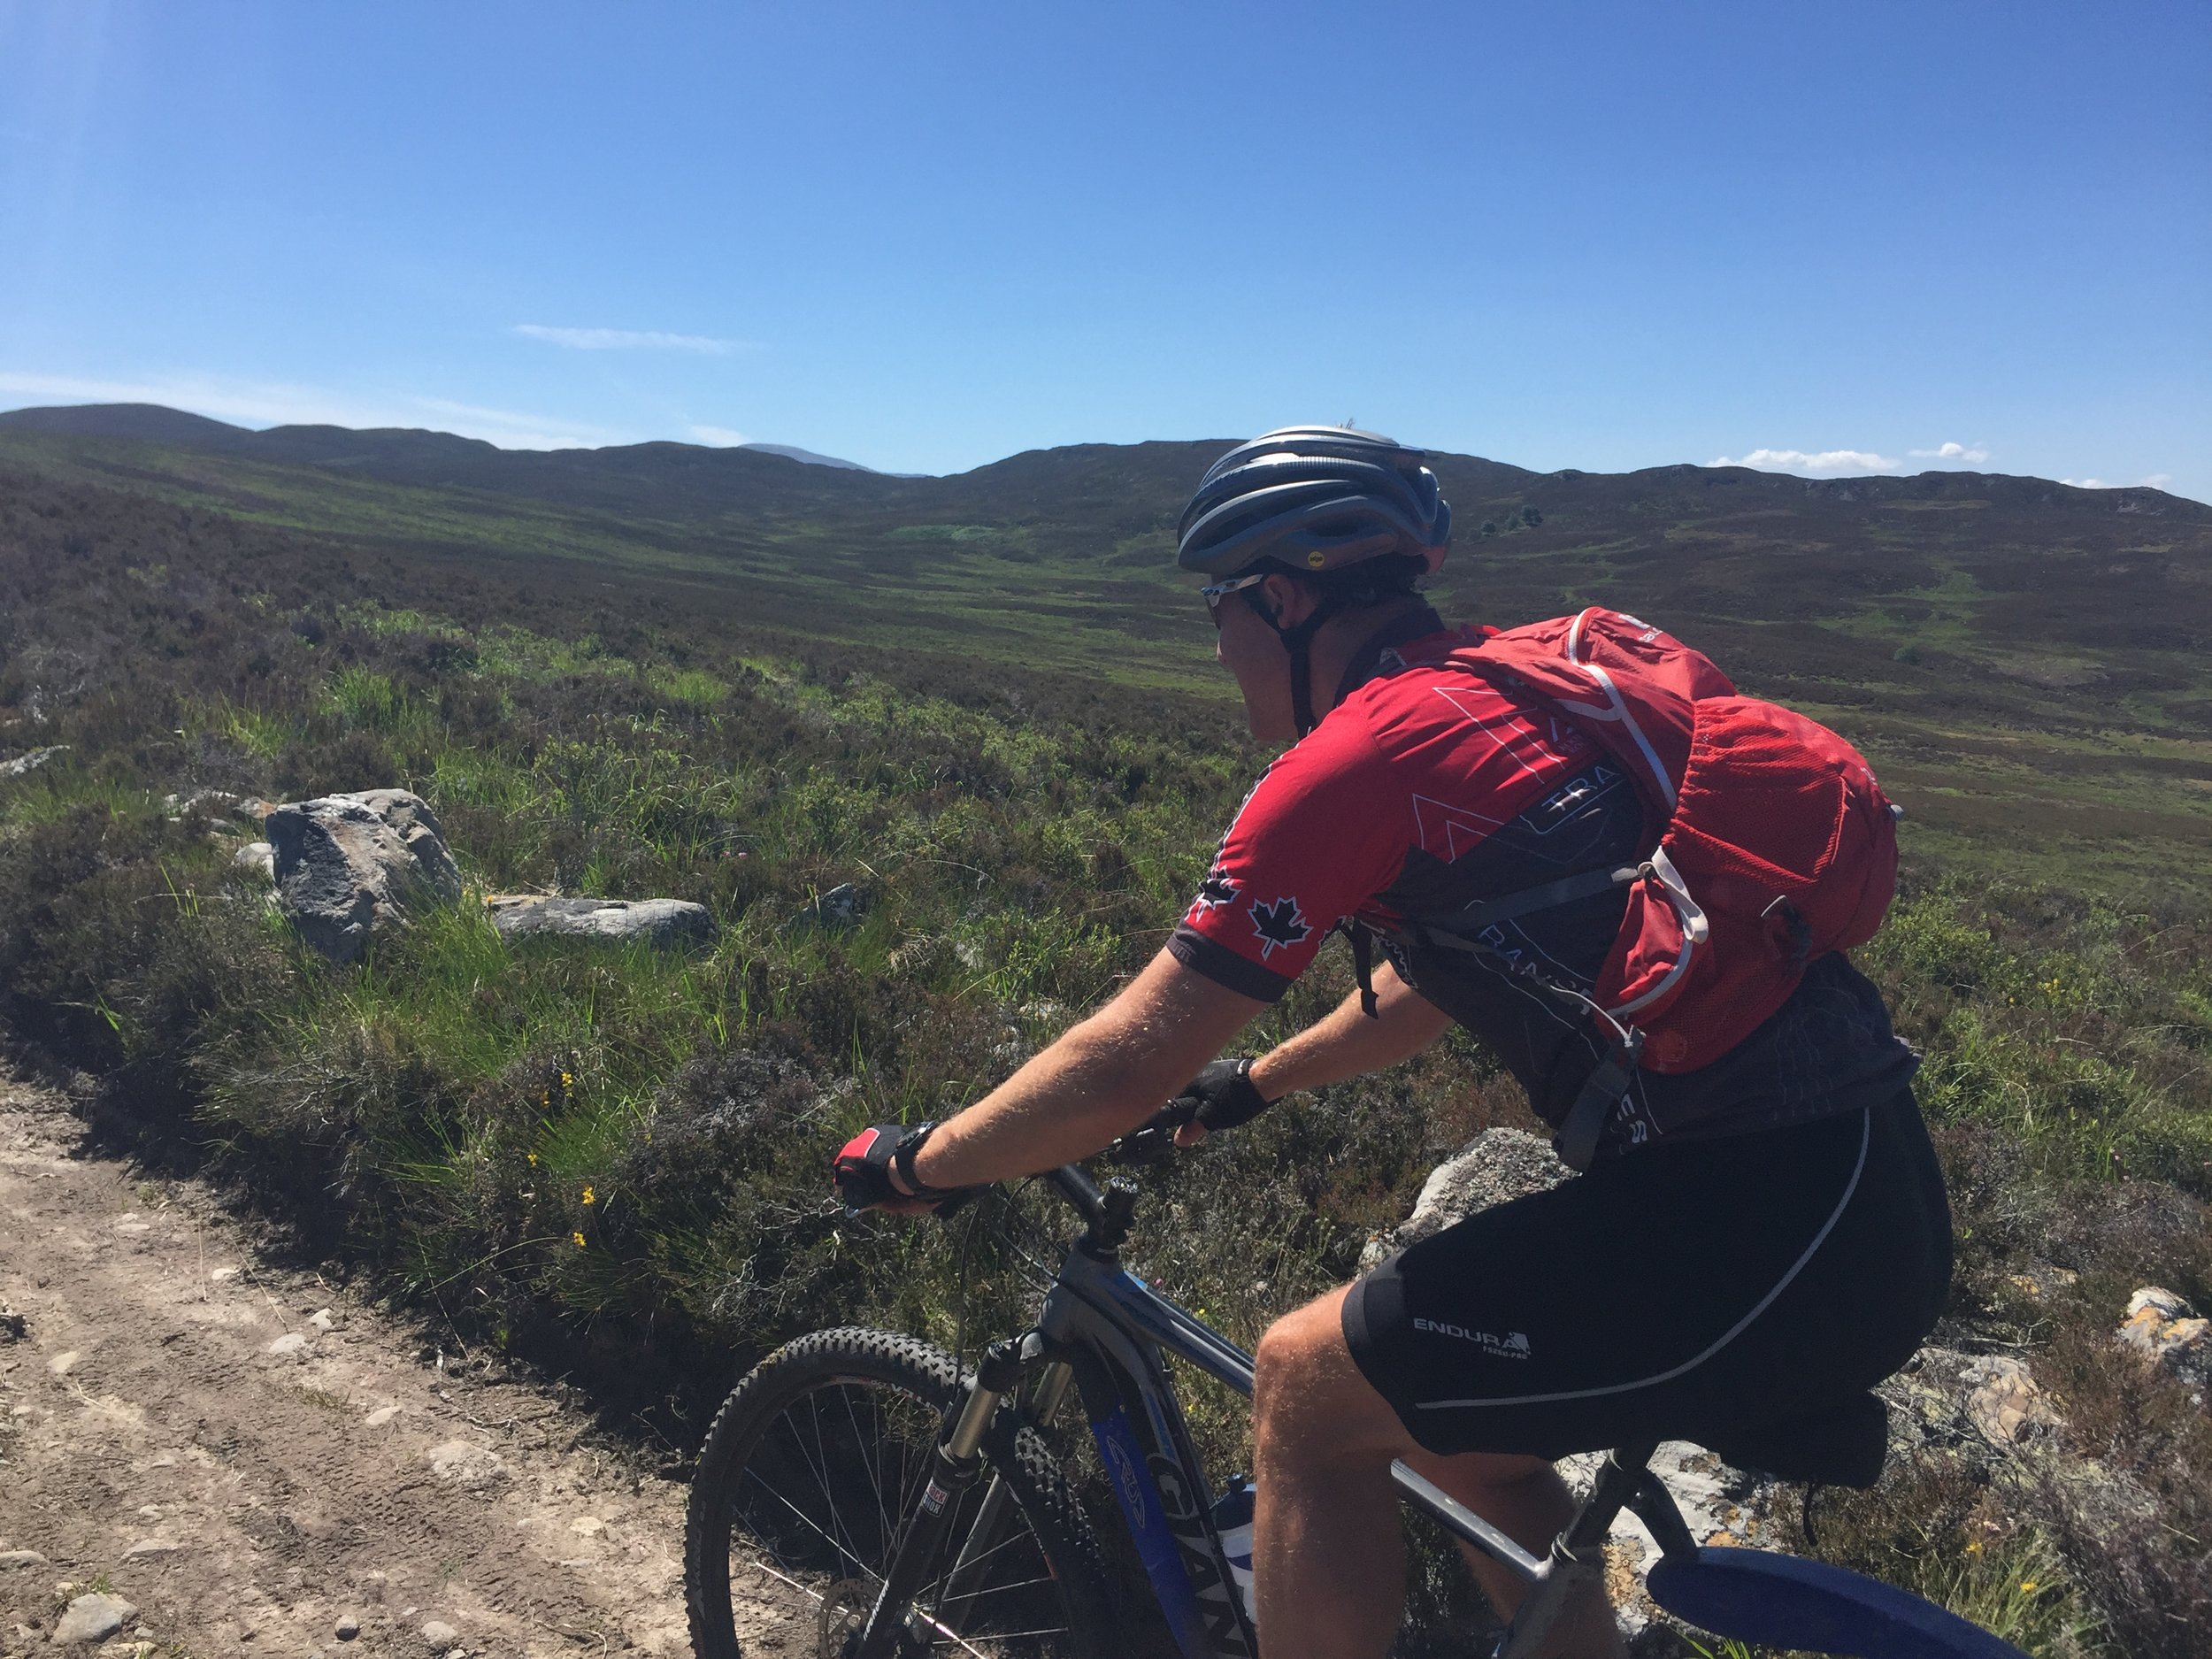 Biking - It's a playground! Kingussie lies at the heart of a network of off-road trails and quiet minor roads. Sustrans Route 7 runs through the town. For on and off-road routes and to join Tuesday night ride outs check out Cycle Friendly Kingussie. Detailed local mountain bike routes can be found at MTBTrails.info and you may want to download TRAILFORKS app. We are keen cyclists and will be happy to introduce you local routes. Download the Kingussie cycling map here. If you fancy some cycling tuition/guided rides we recommend Dave at School of Mountainbiking.Should you have enough energy left you can head north to explore the cycling around Aviemore, Boat of Garten/Carrbridge and Granton on Spey. For trail centres head south to Laggan Wolftrax or north to Bike Glenlivet.